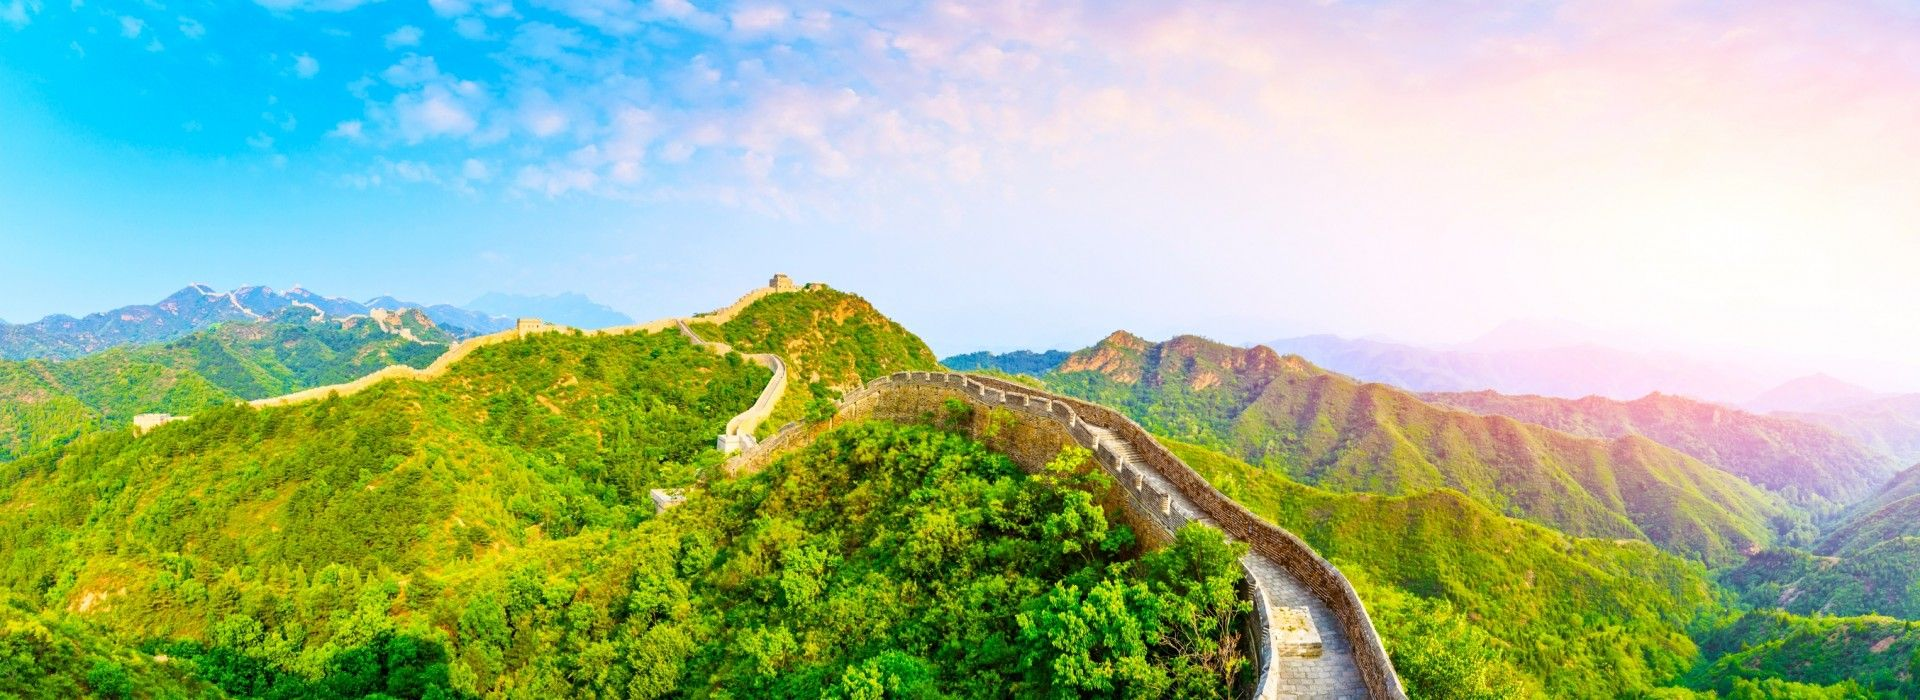 City sightseeing Tours in Guilin